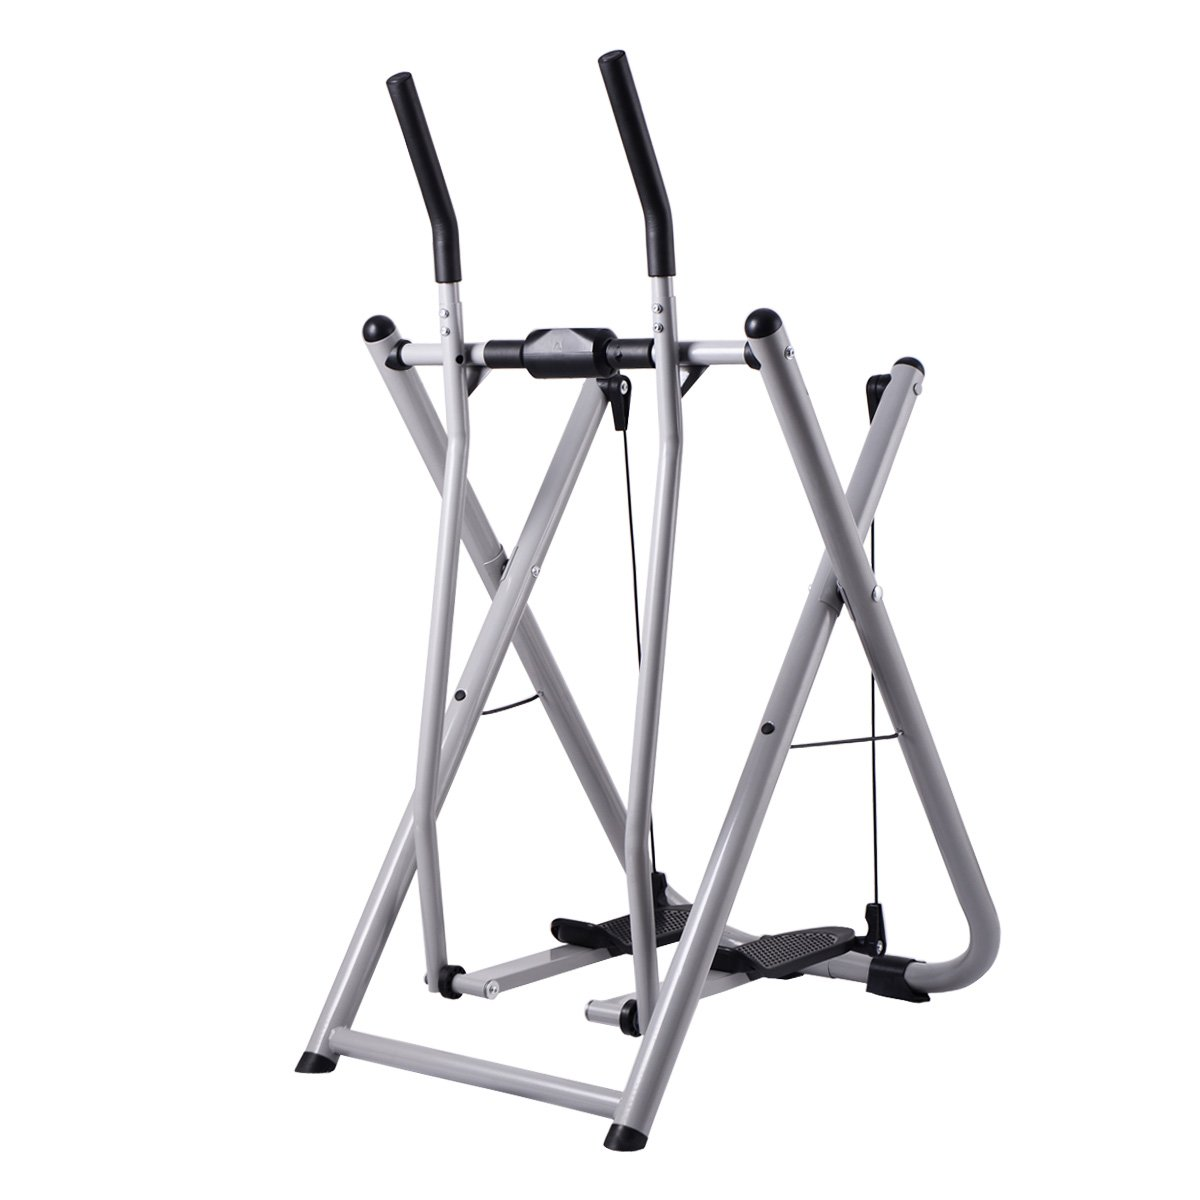 COSTWAY Folding Air Walk Trainer Fitness Exercise Elliptical Machine Stepper Glider for Gym Home Office with LCD Monitor